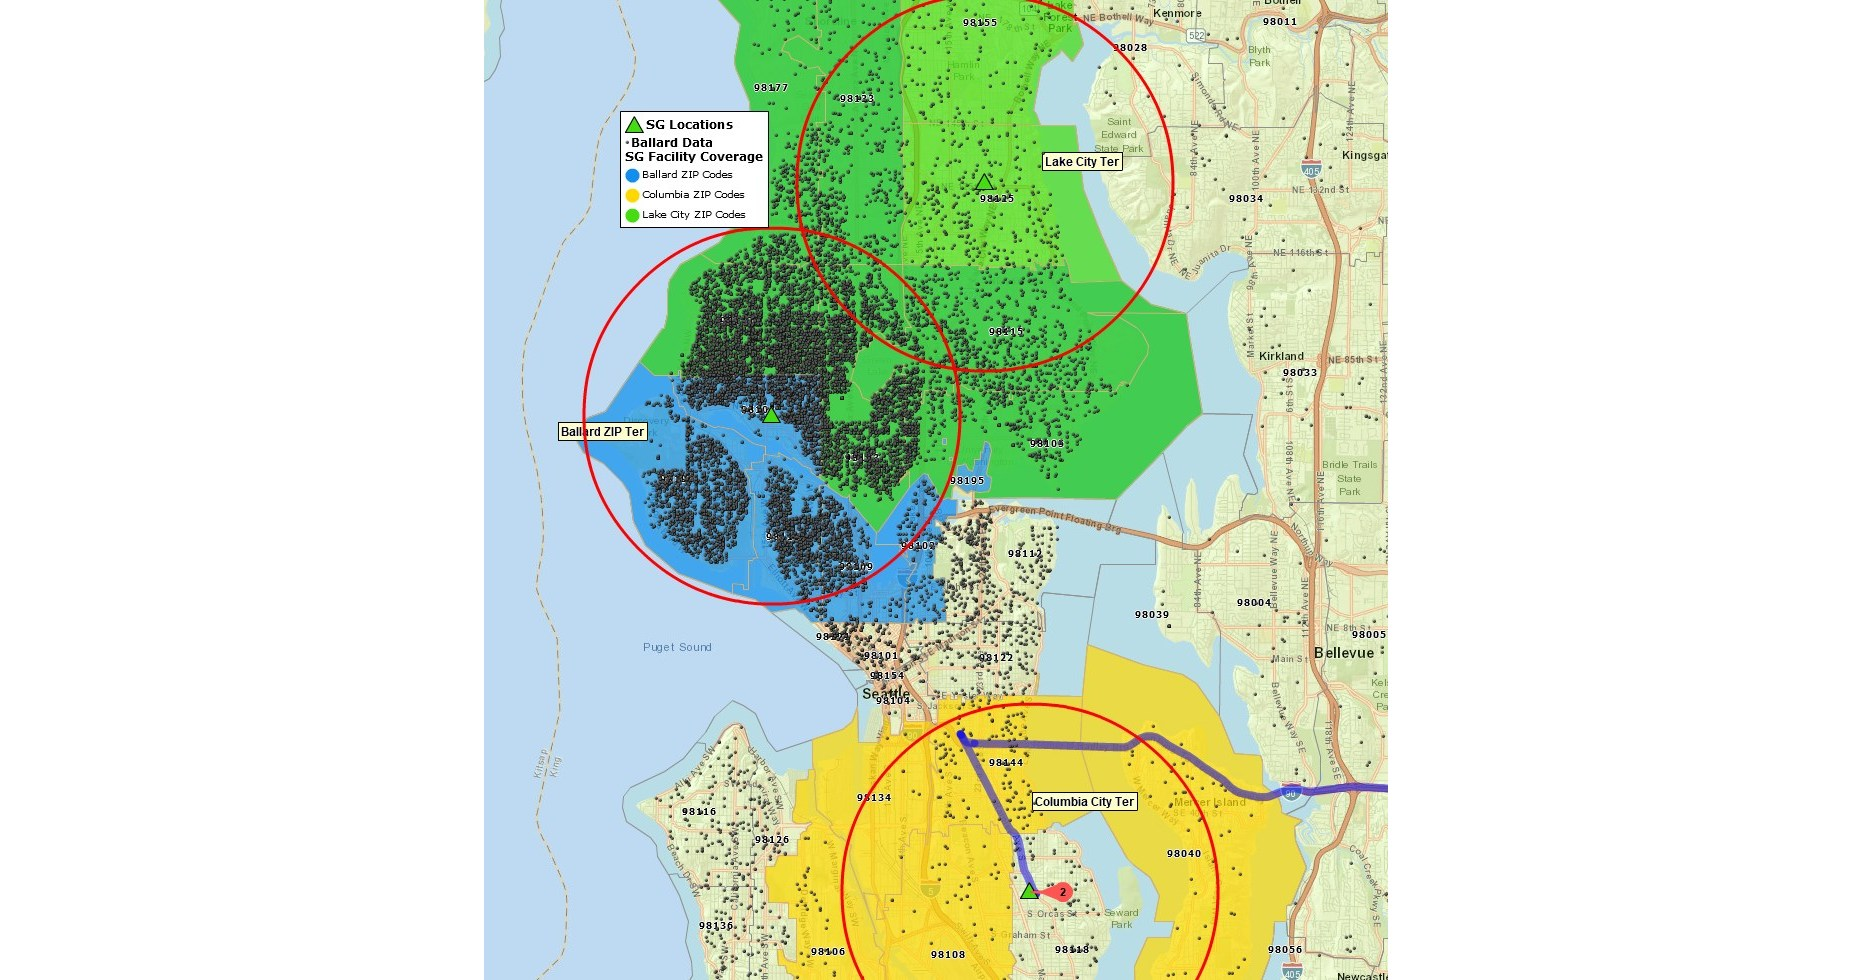 Seattle Gymnastics Chooses Map Business Online for Expansion ... on map business people, gis maps online, map games online, home business online, restaurant business online, mind map online, map business software,